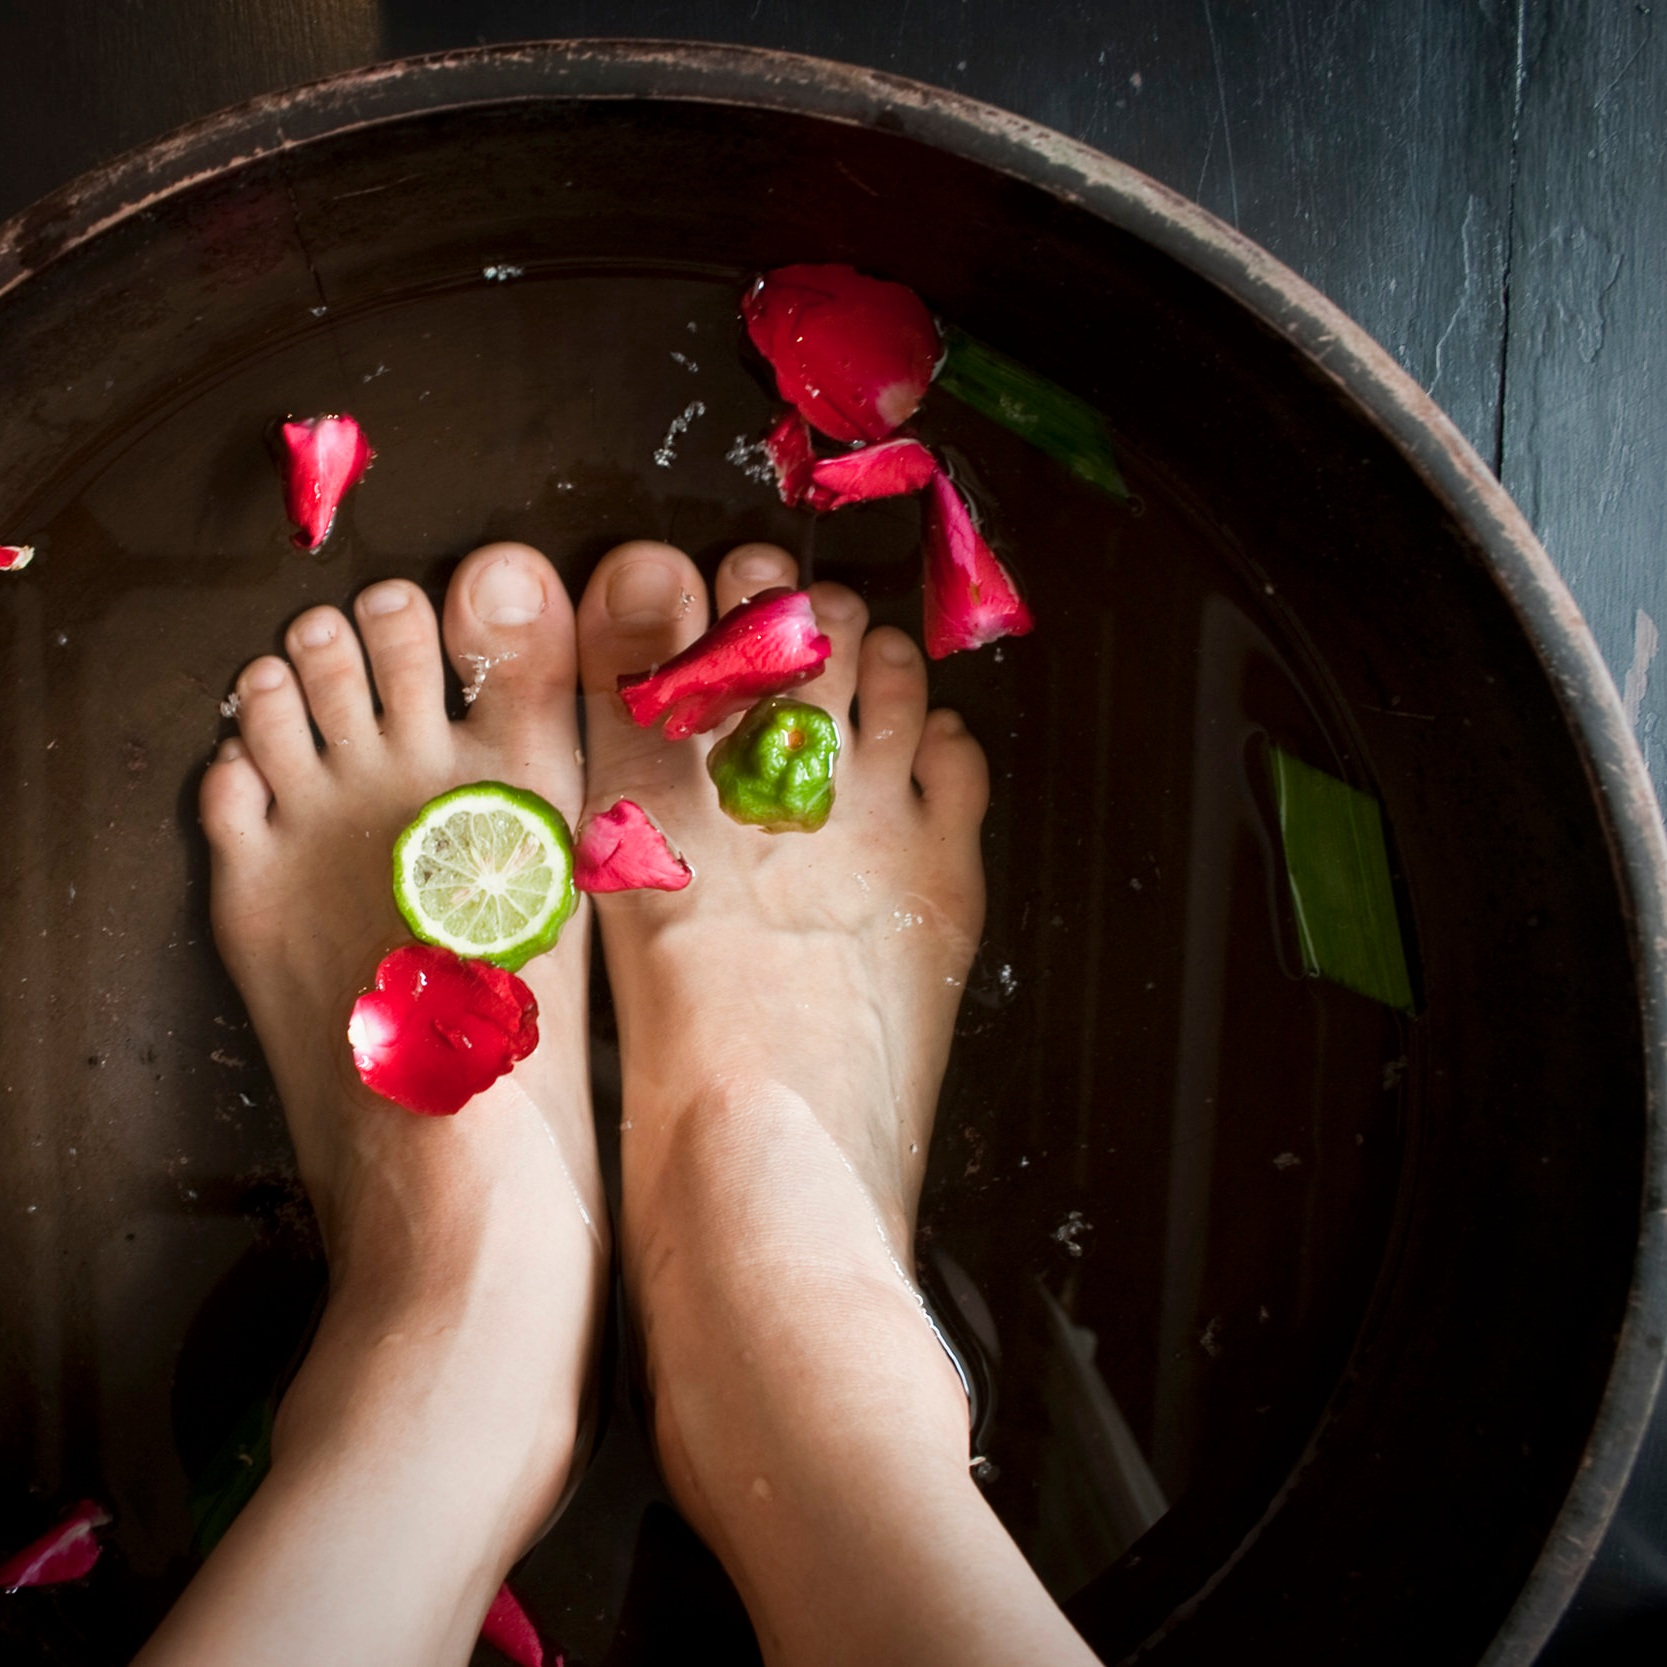 What is Reflexology? - It is an ancient Chinese technique that uses pressure-point massage (usually on the feet, but also on the hands and ears) to restore the flow of energy throughout the entire body. It is based on the premise that there are reflexes in our hands, feet and ears that relate to every organ and part of our body.Learn More